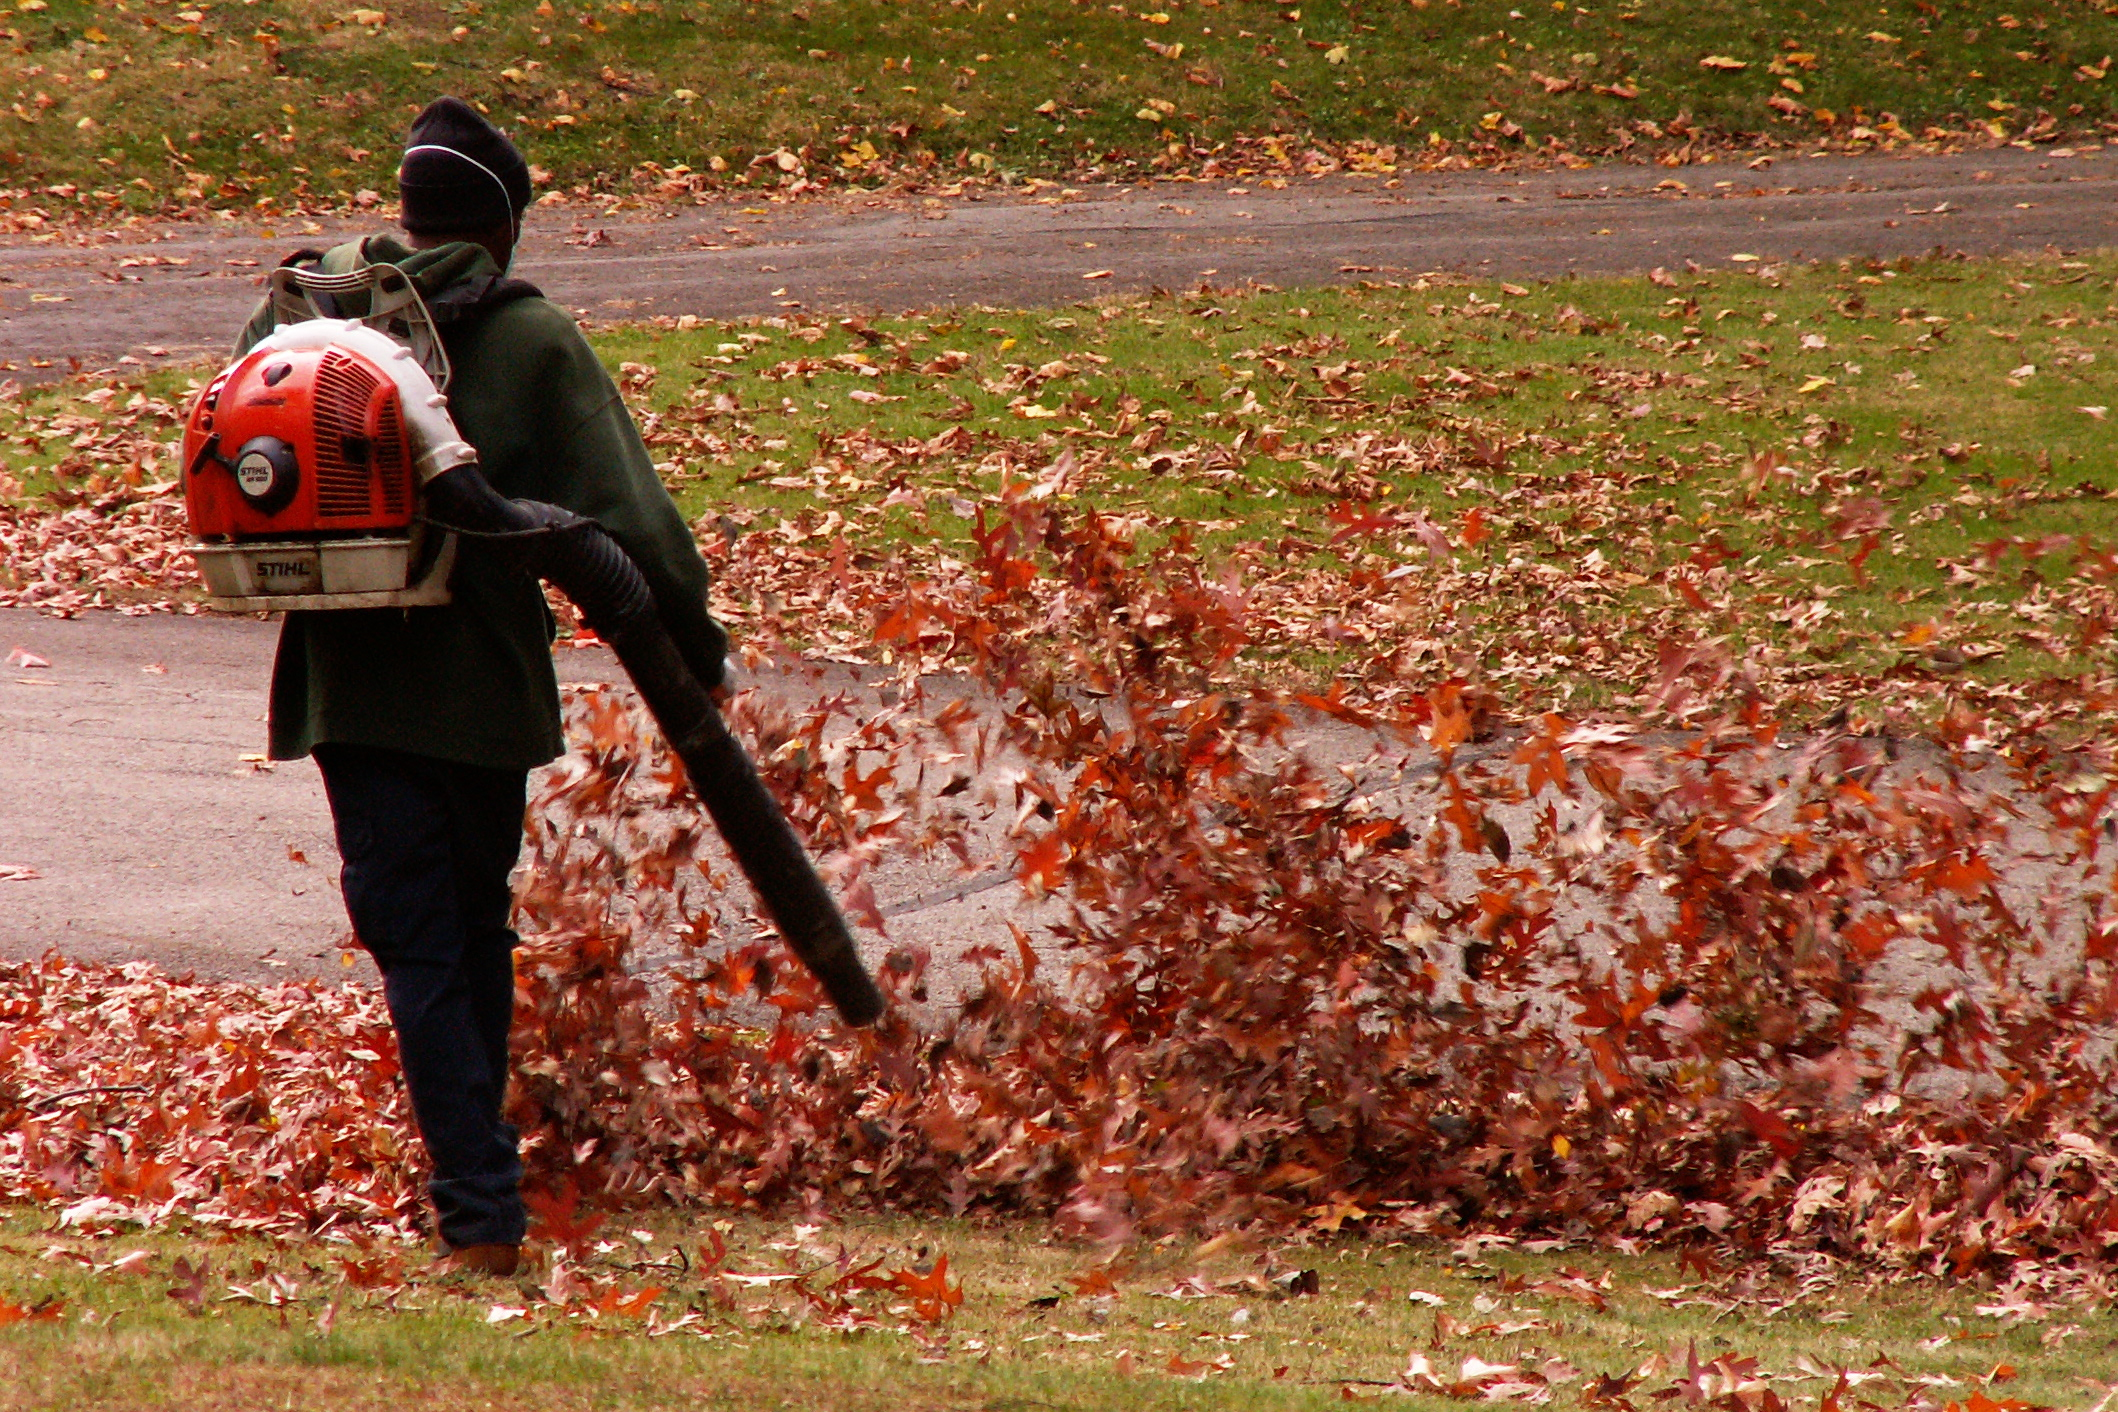 Best Leaf Blower   Disclaimer: There are affiliate links in this post. This means that at no cost to you, I will receive a small commission if you purchase through my link. I will only ever promote the products and services that I trust and 100% recommend. You may read my full  disclosure policy  for more information. Thanks for supporting my business in this way.